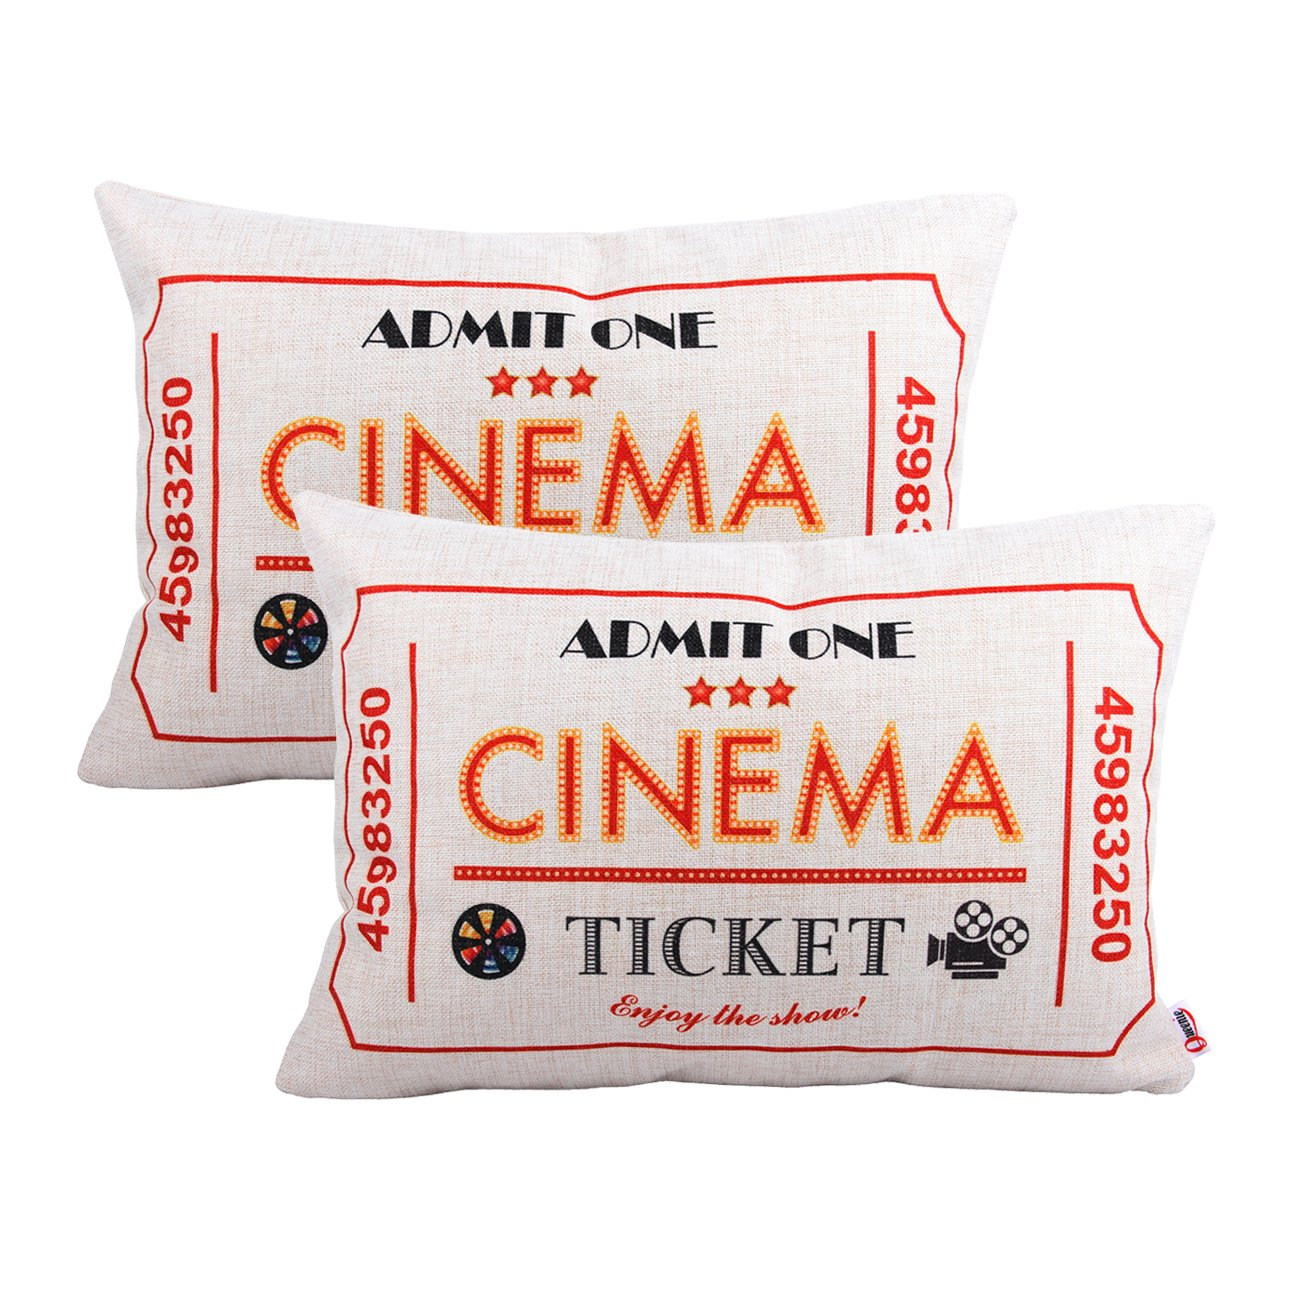 Queenie® - 2 Pcs Movie & Music Theme Decorative Pillow Cases Throw Cushion Covers 35 cm x 50 cm 14 x 20 Inch (movie ticket red)